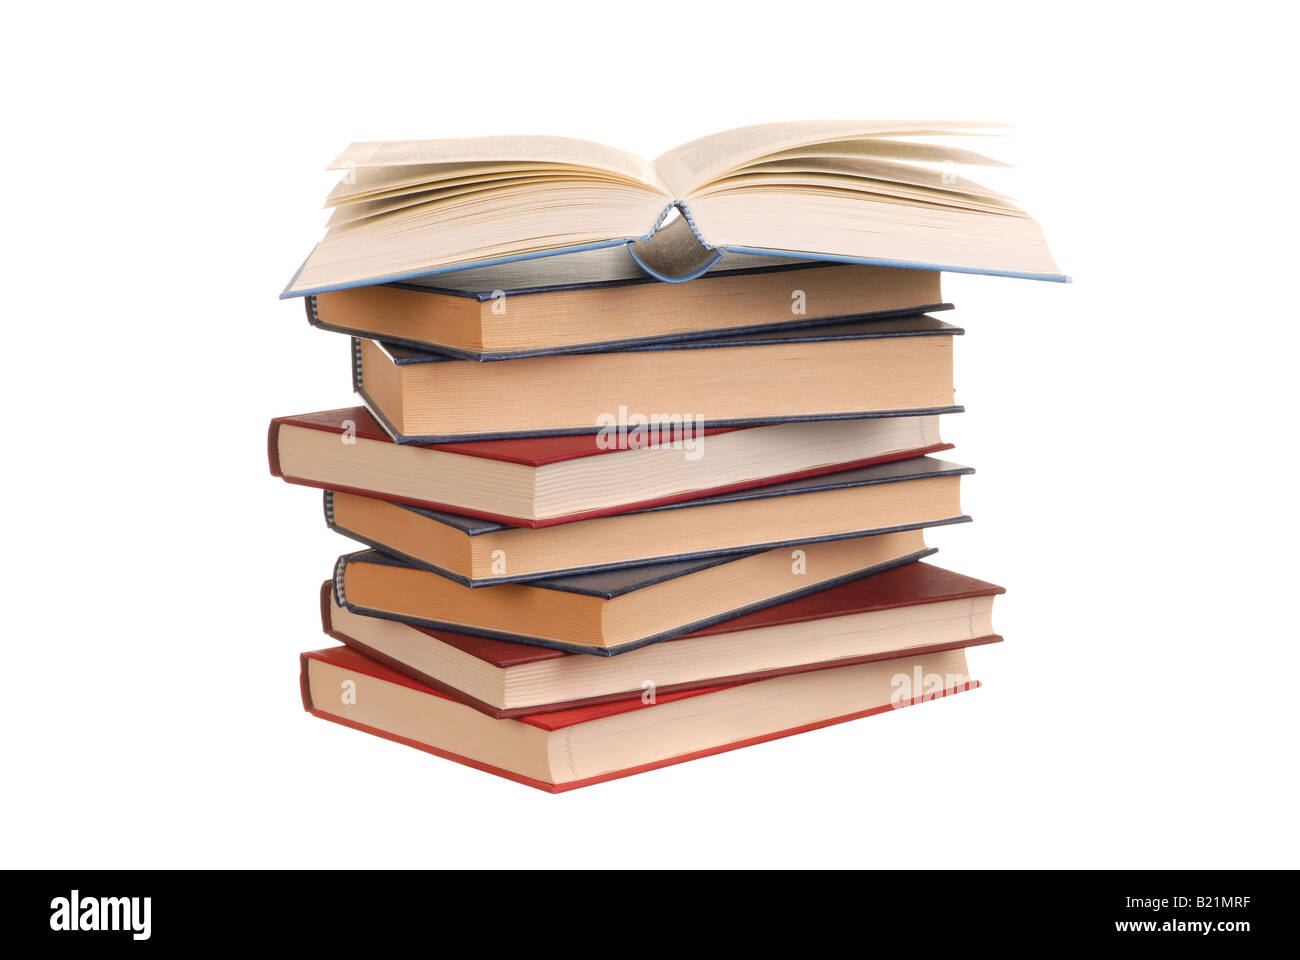 Open books on book stack - Stock Image